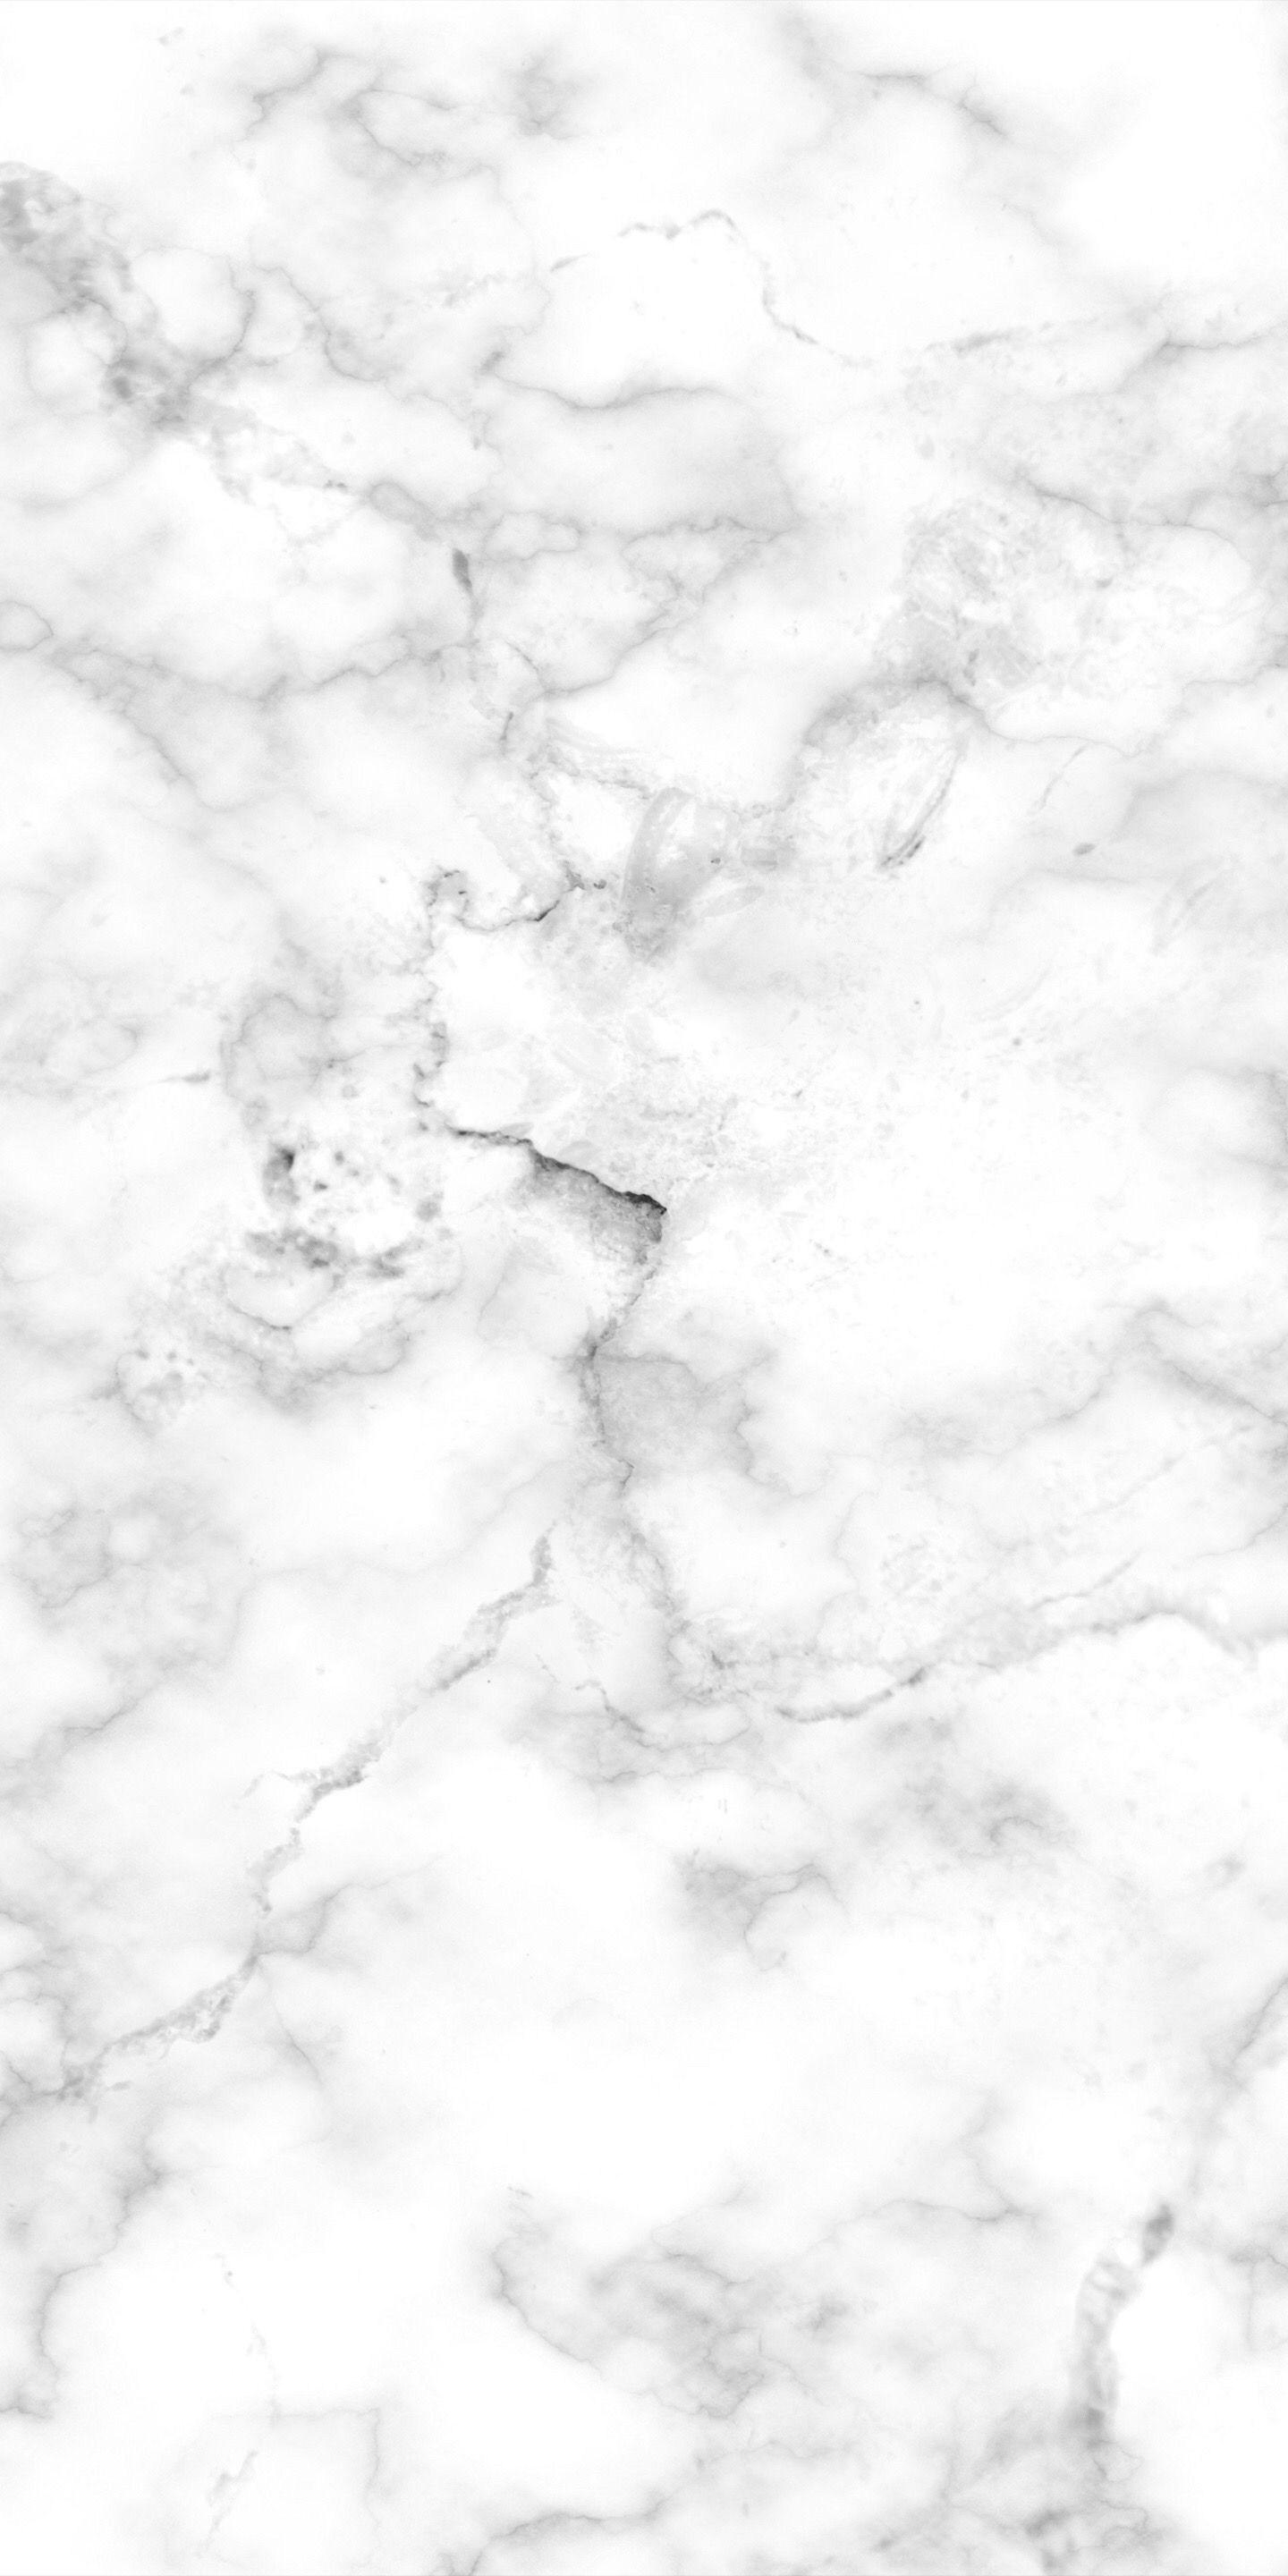 Wallpapers Marble Background Iphone Iphone Background Wallpaper Marble Iphone Wallpaper